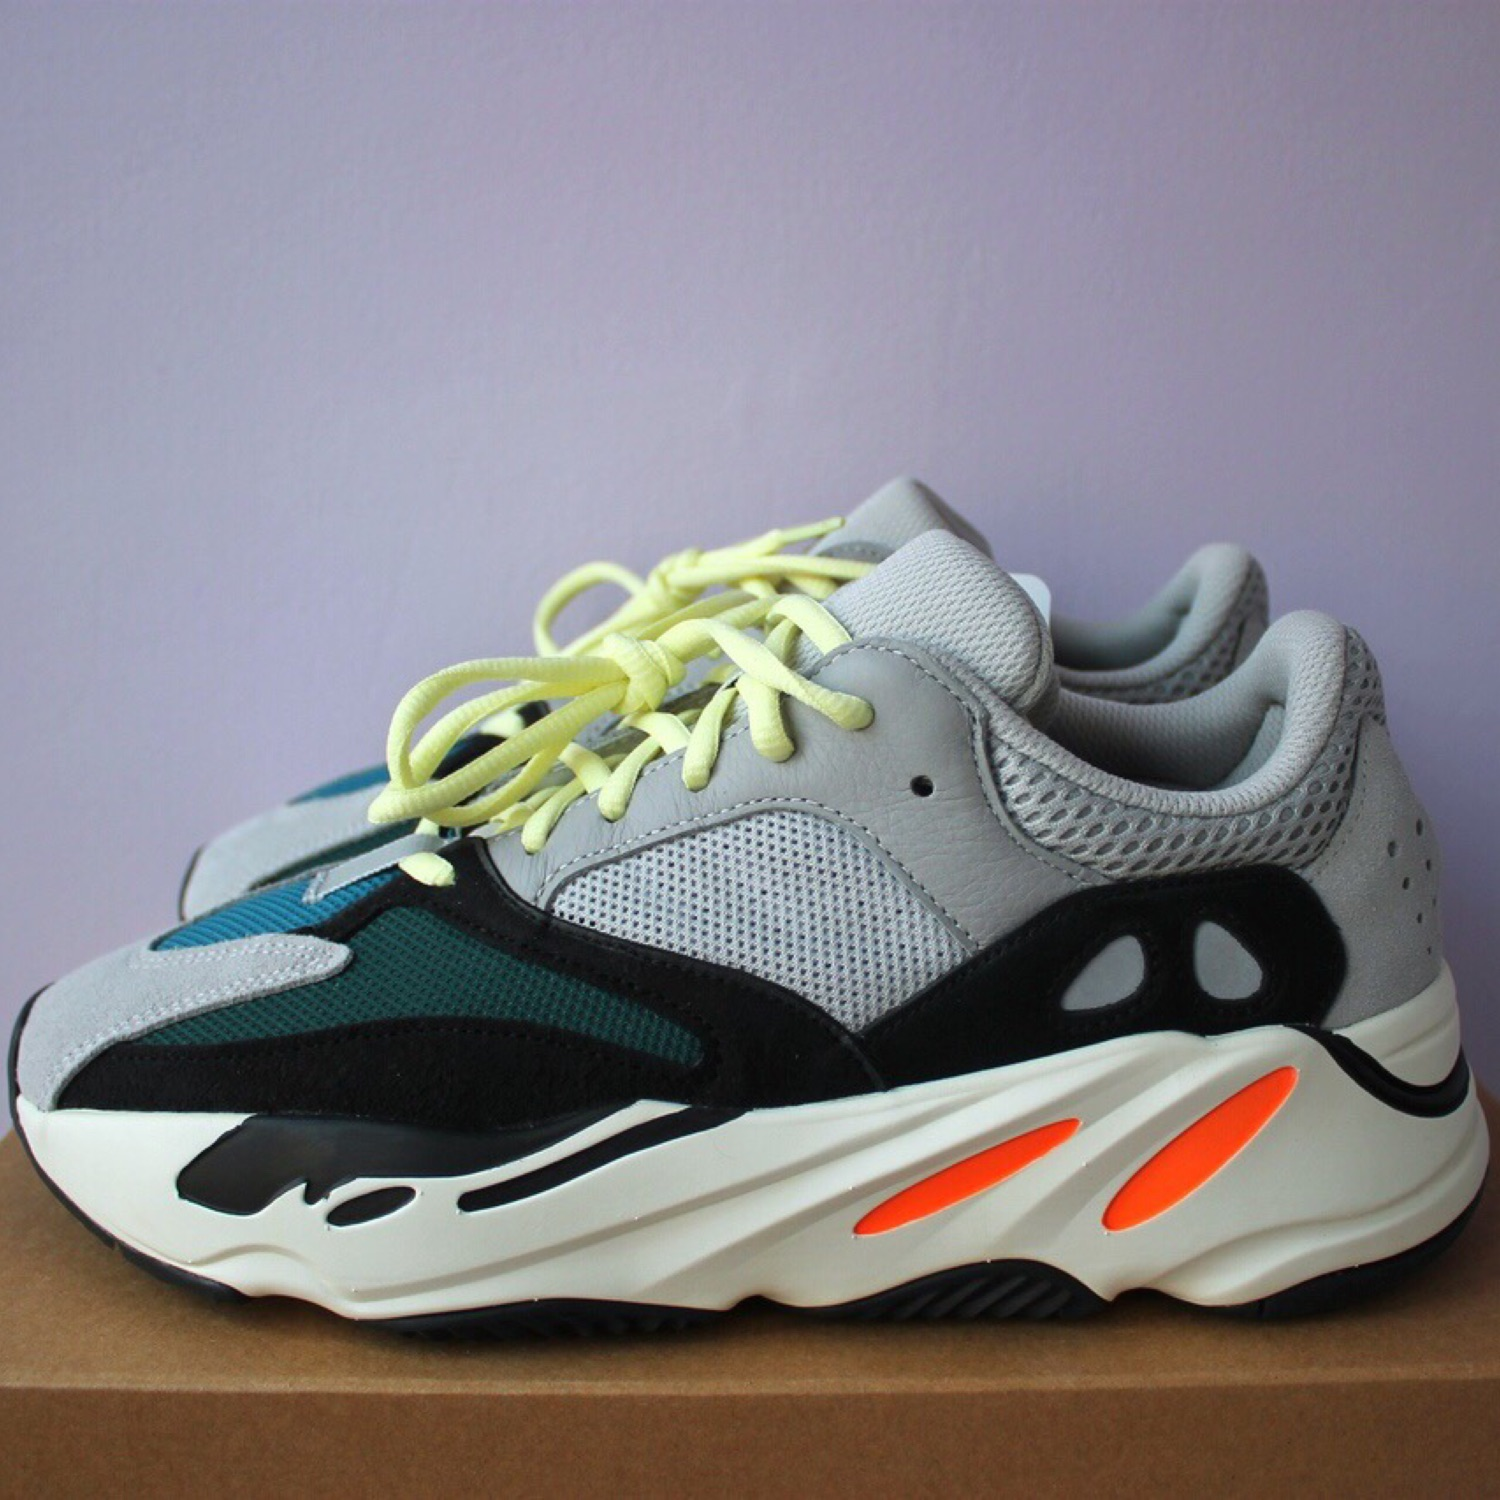 finest selection b0673 263fe Adidas X Kanye West Yeezy Boost 700 Wave Runner